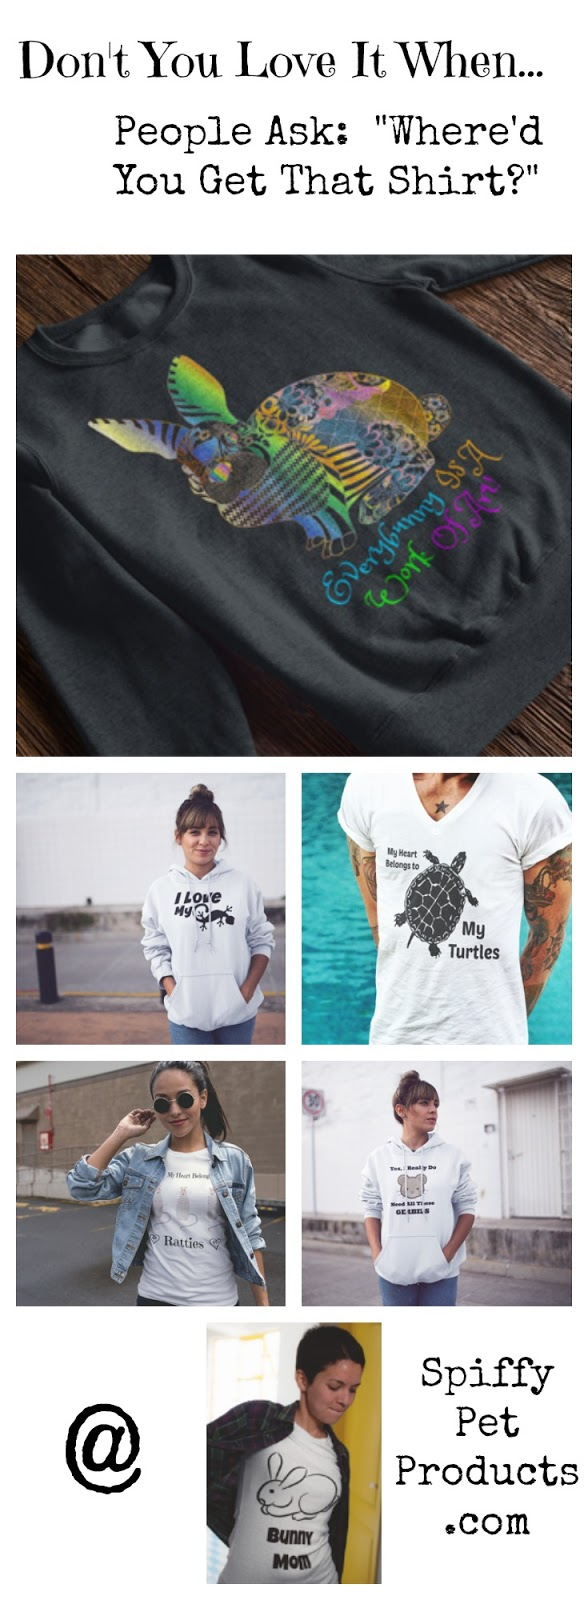 Spiffy Pet T Shirts: spifftastic new designs for small animal lovers everywhere